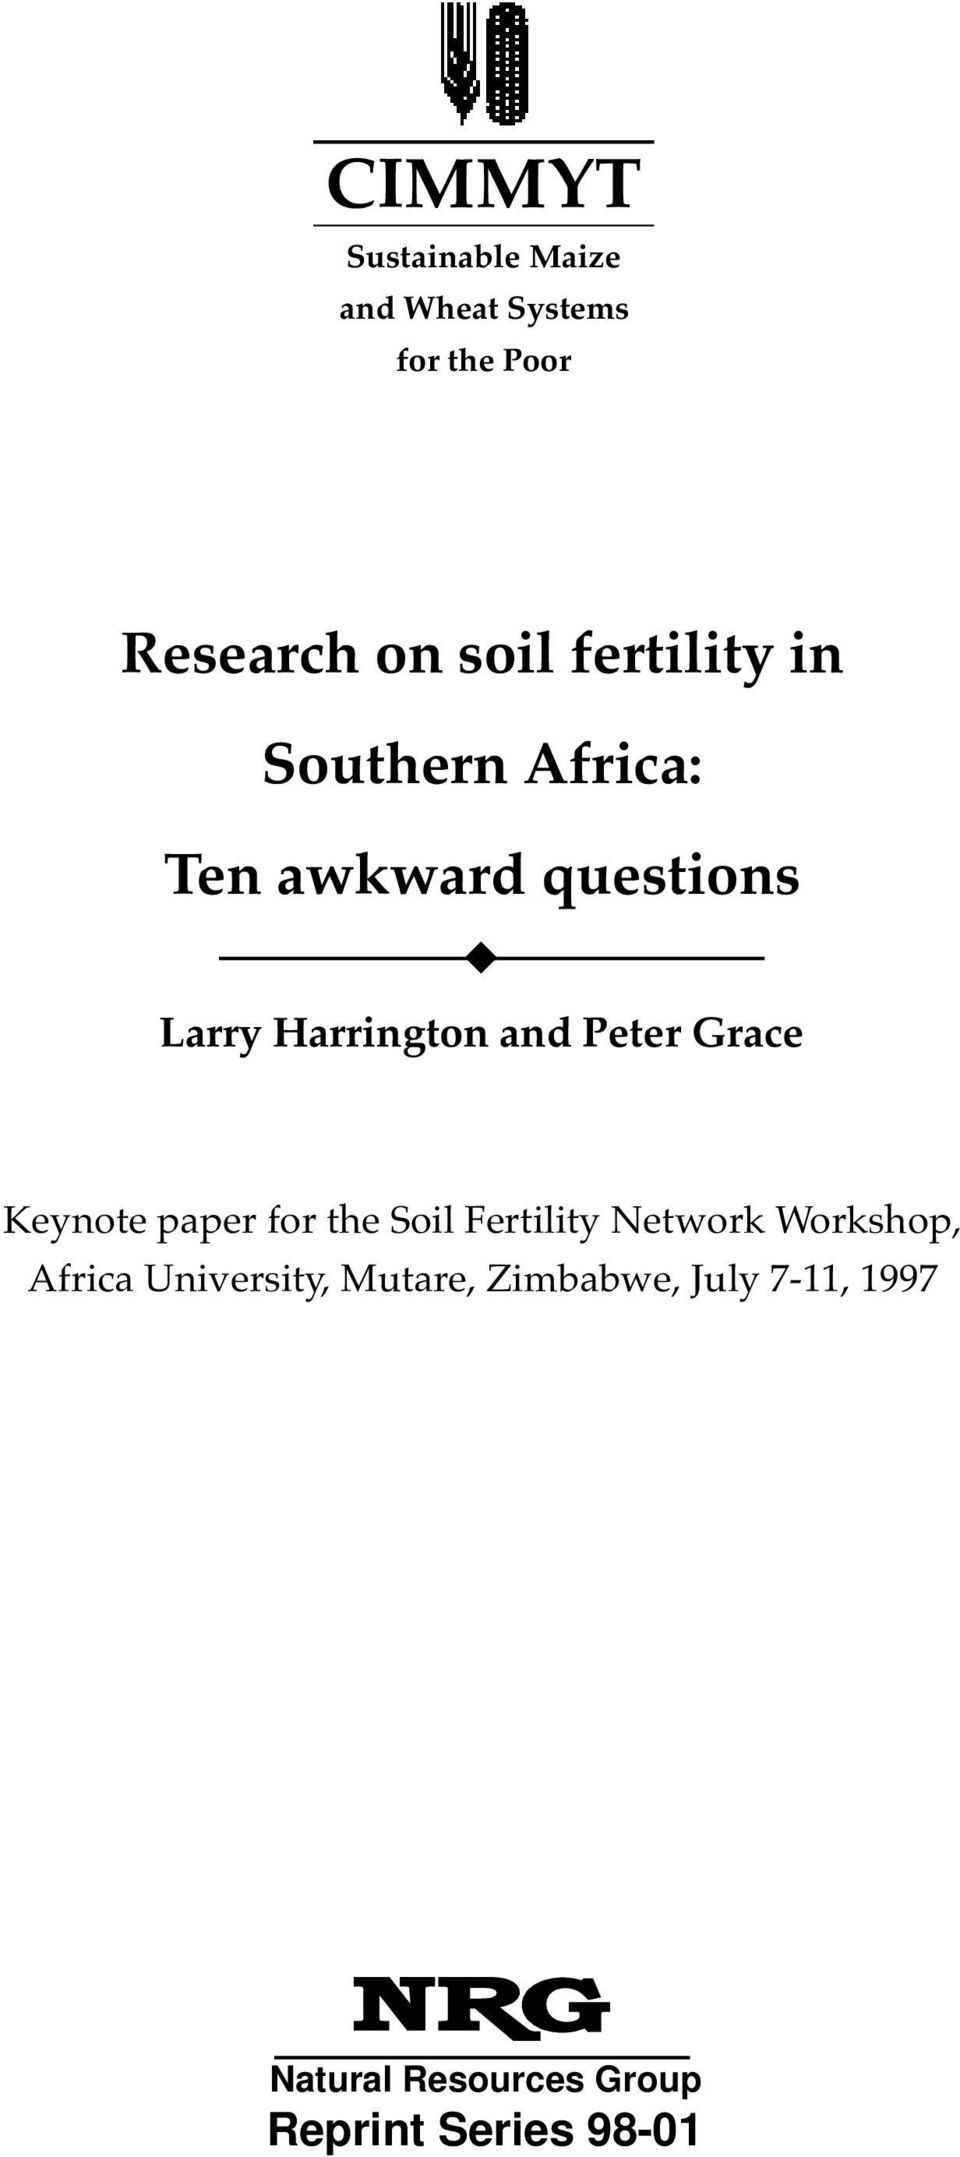 Peter Grace Keynote paper for the Soil Fertility Network Workshop, Africa